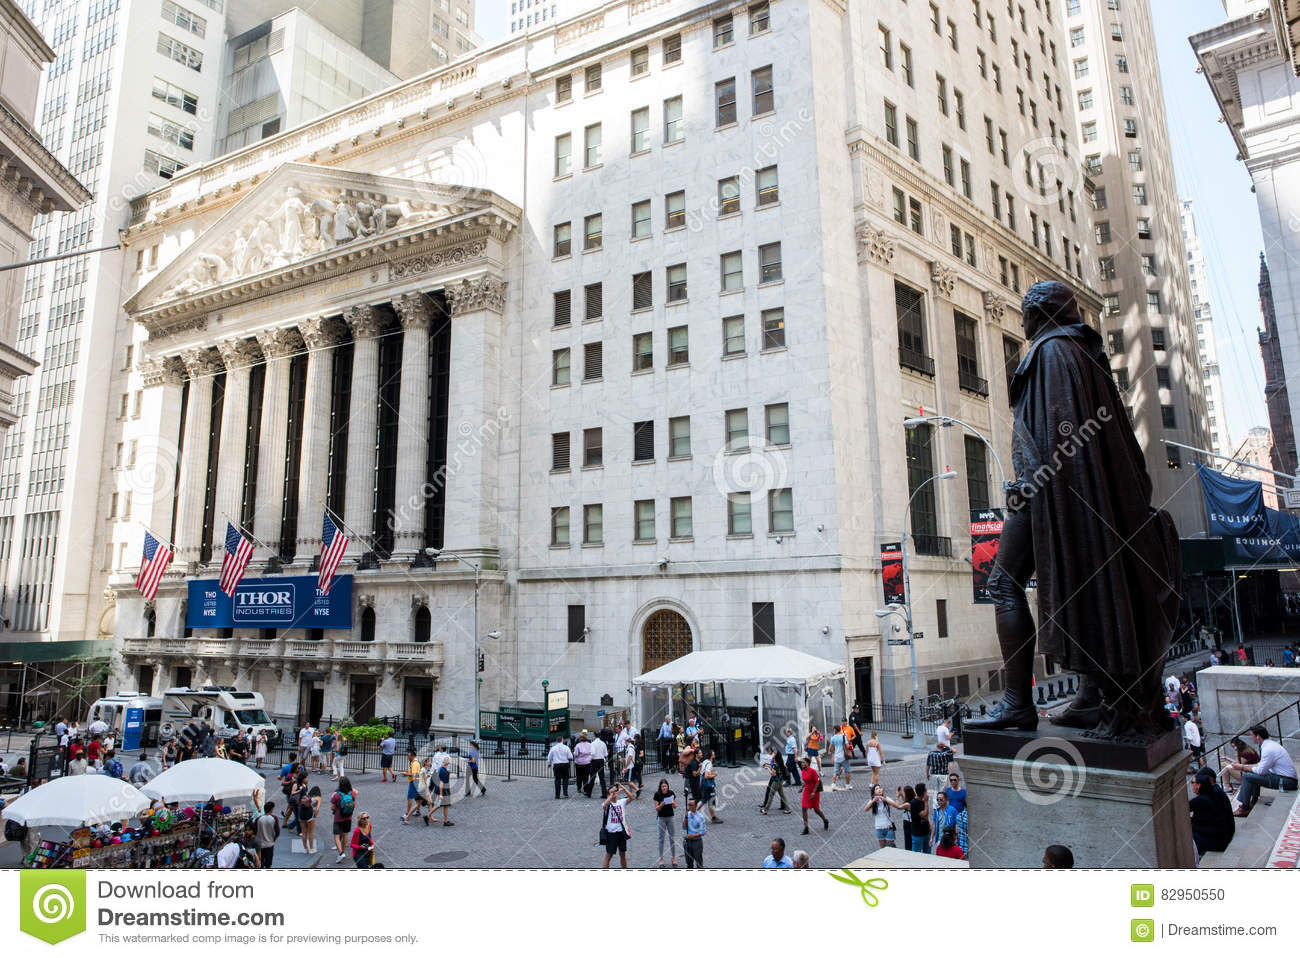 f965eb4c New York, NY: August 27, 2016: NYSE on Wall Street. The New York Stock  Exchange NYSE is the largest stock exchange in the world by market cap.